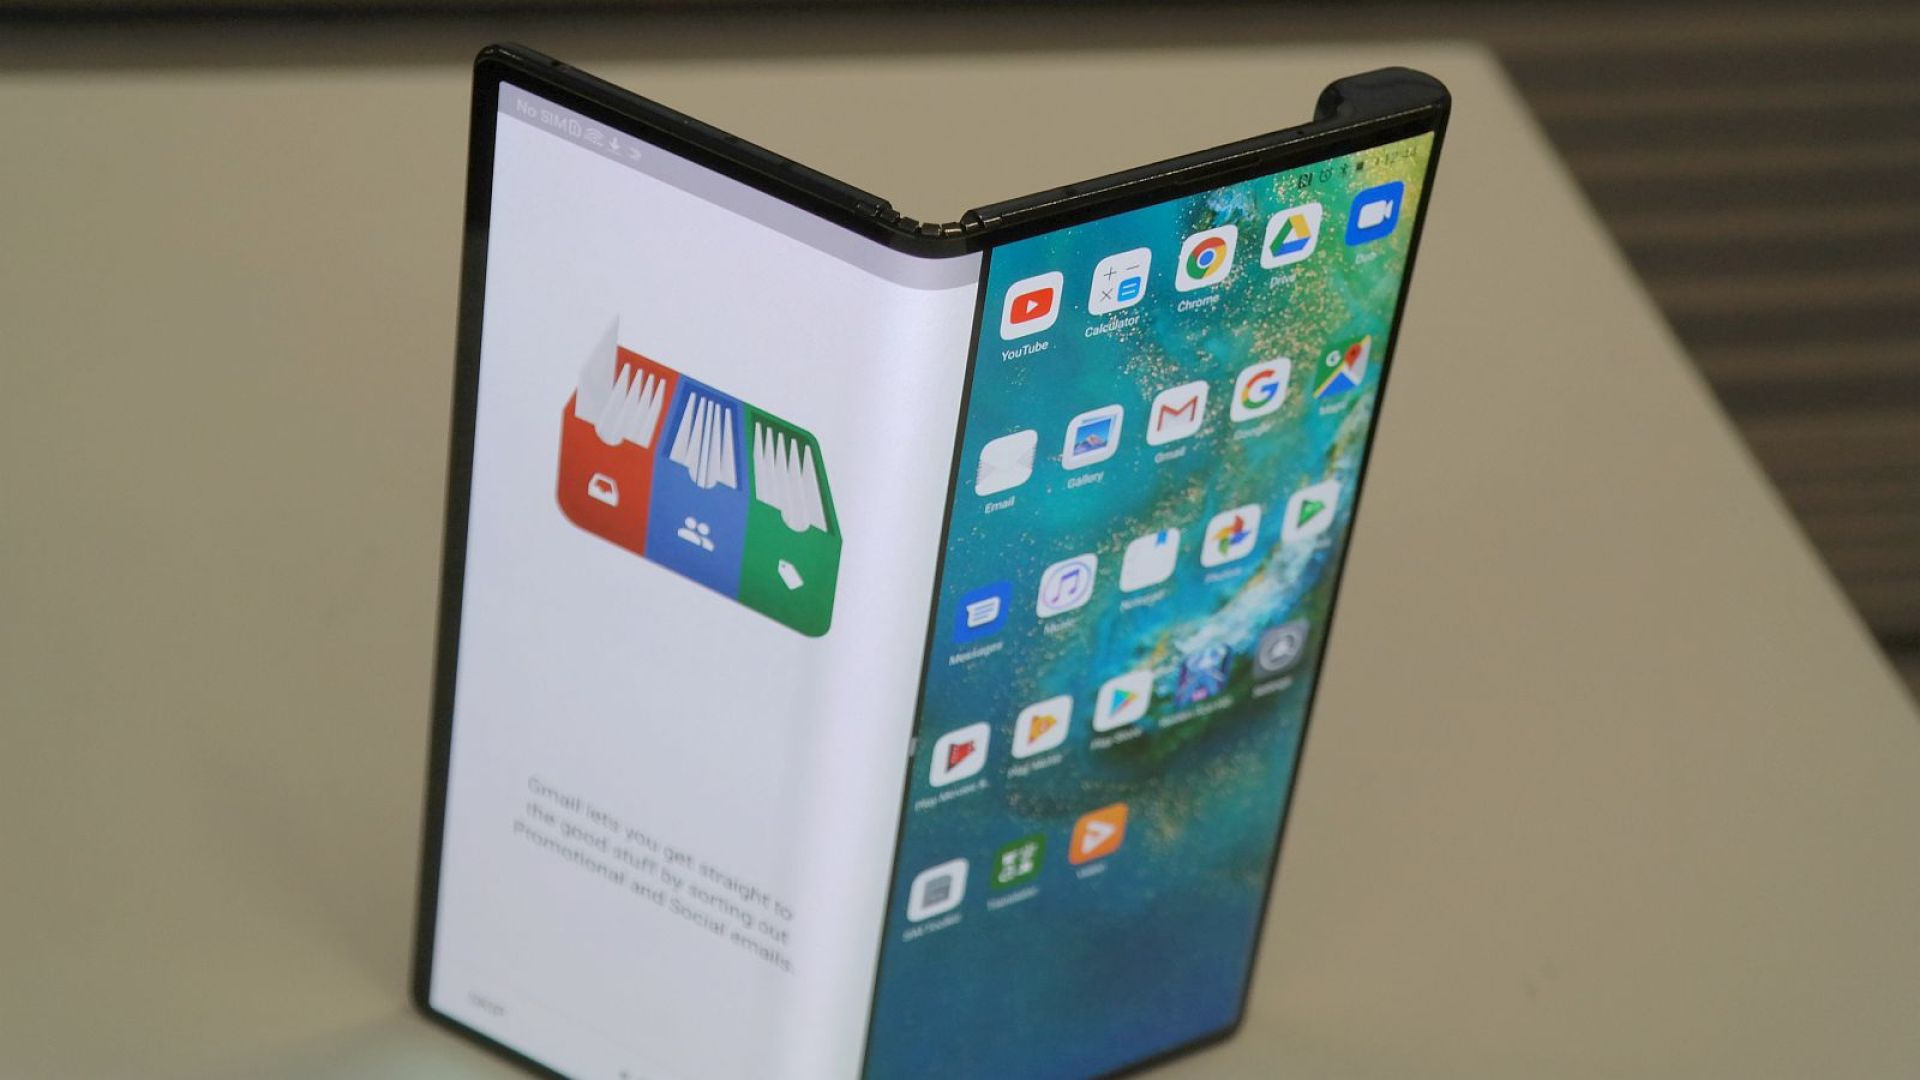 Gartner predicts 30 million foldable phones will be sold by 2023